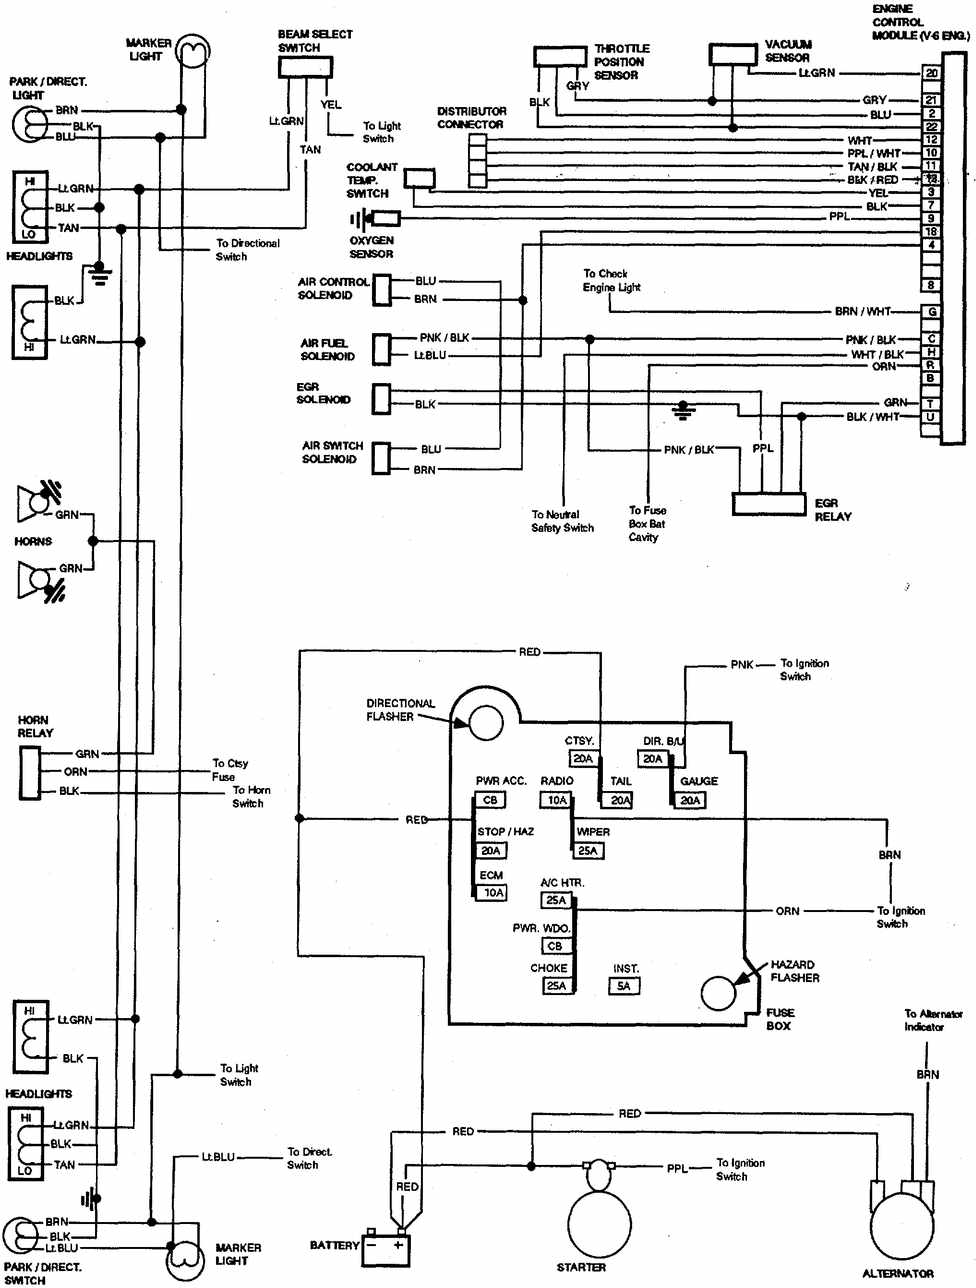 small resolution of 1997 chevy blazer fuse panel wiring auto electrical wiring diagram rh mit edu uk hardtobelieve me